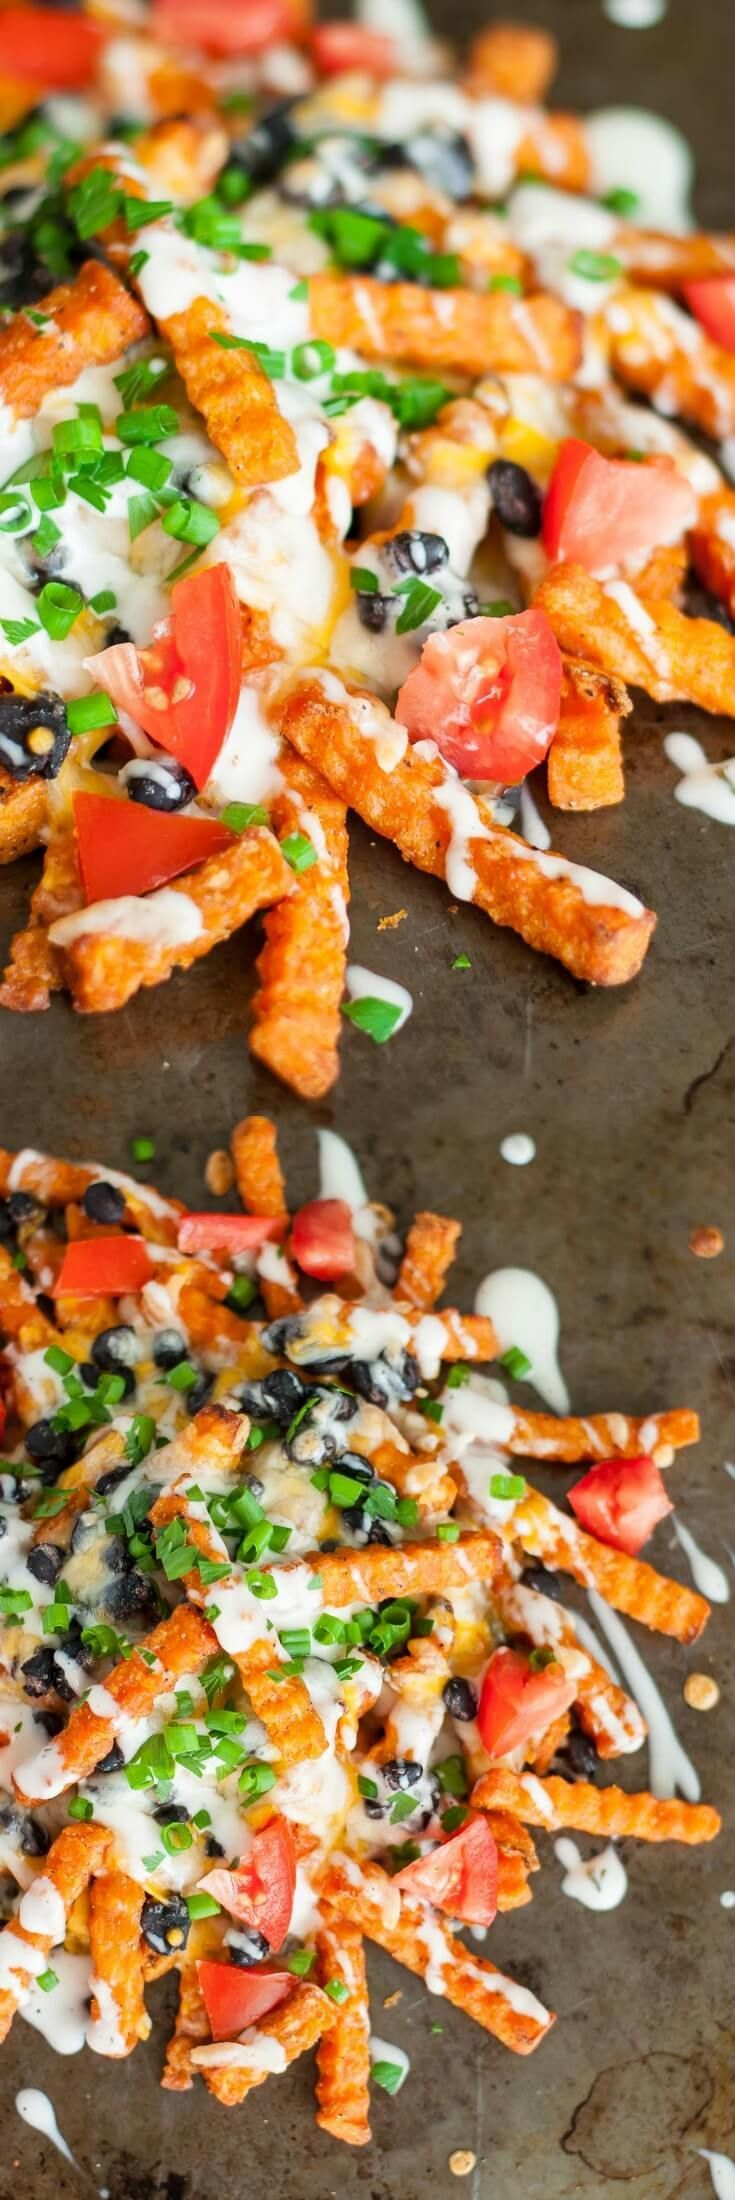 Whenever I have a lone bag of french fries in my freezer, or a sweet potato just begging to become snack food, I bake them up and make Loaded Mexican Sweet Potato Cheese Fries. Like nachos; only better!